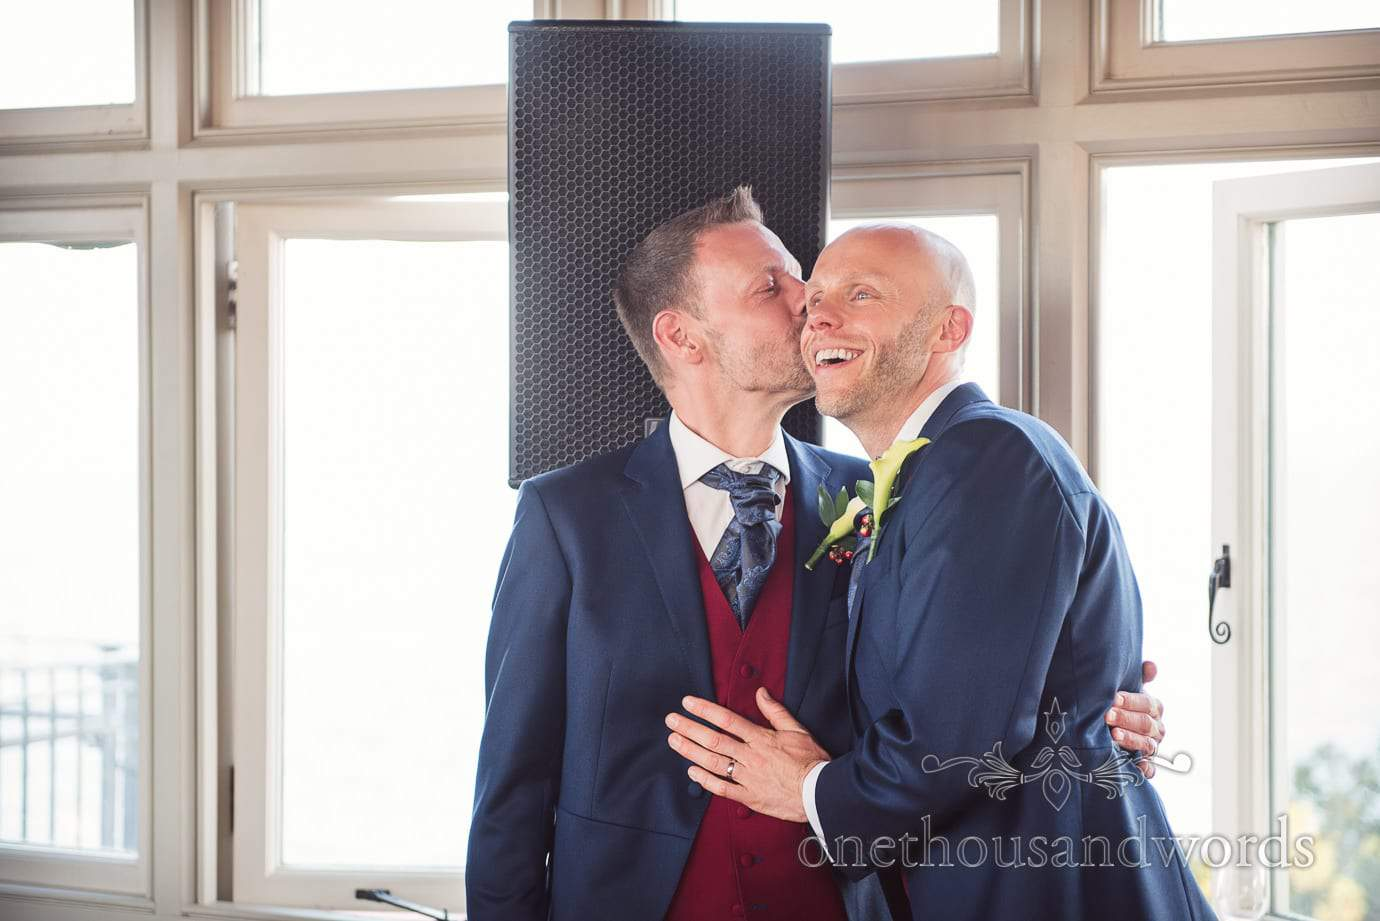 Gay wedding couple in blue suits kiss during wedding speeches at Swanage Castle wedding